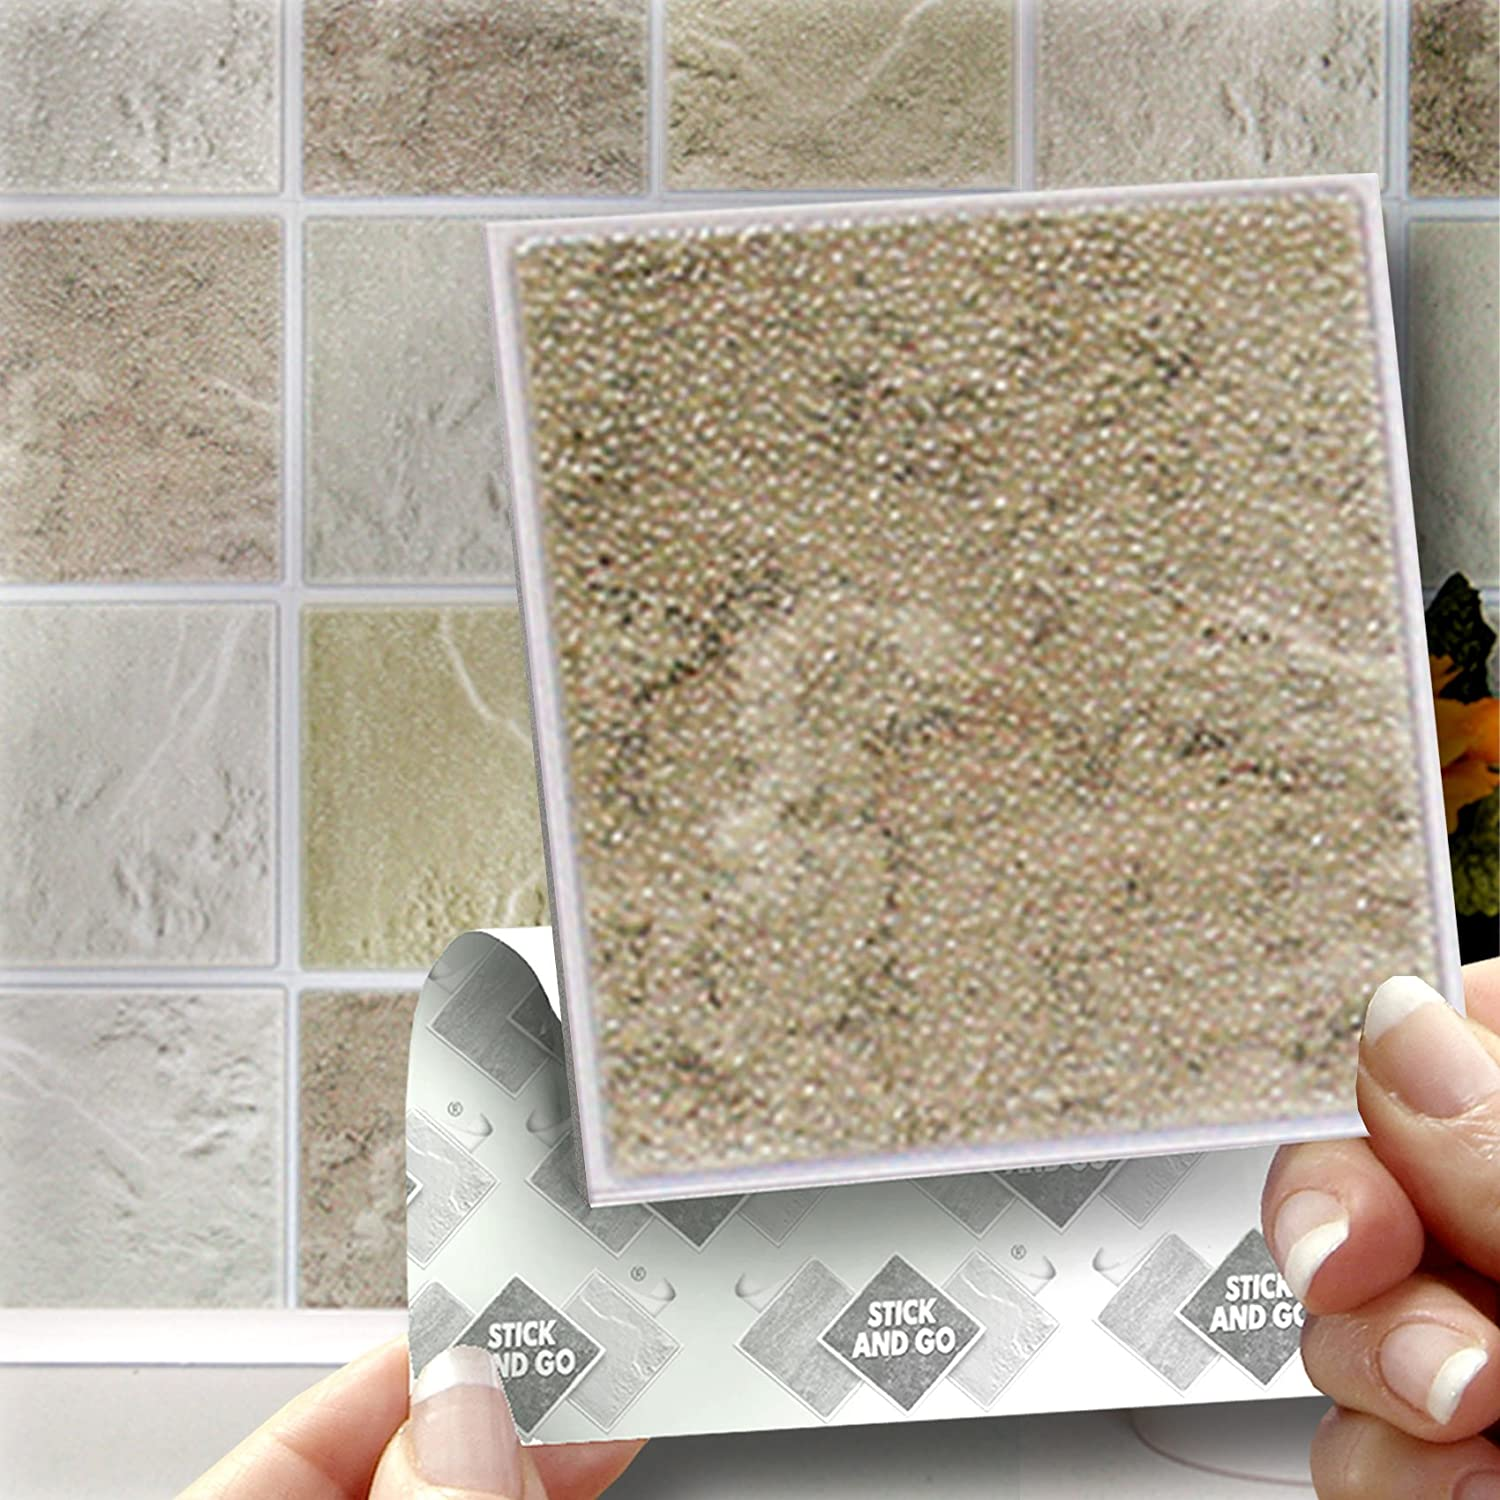 18 COTSWOLD MIX EFFECT WALL TILES - 2mm Thick and solid Self ...